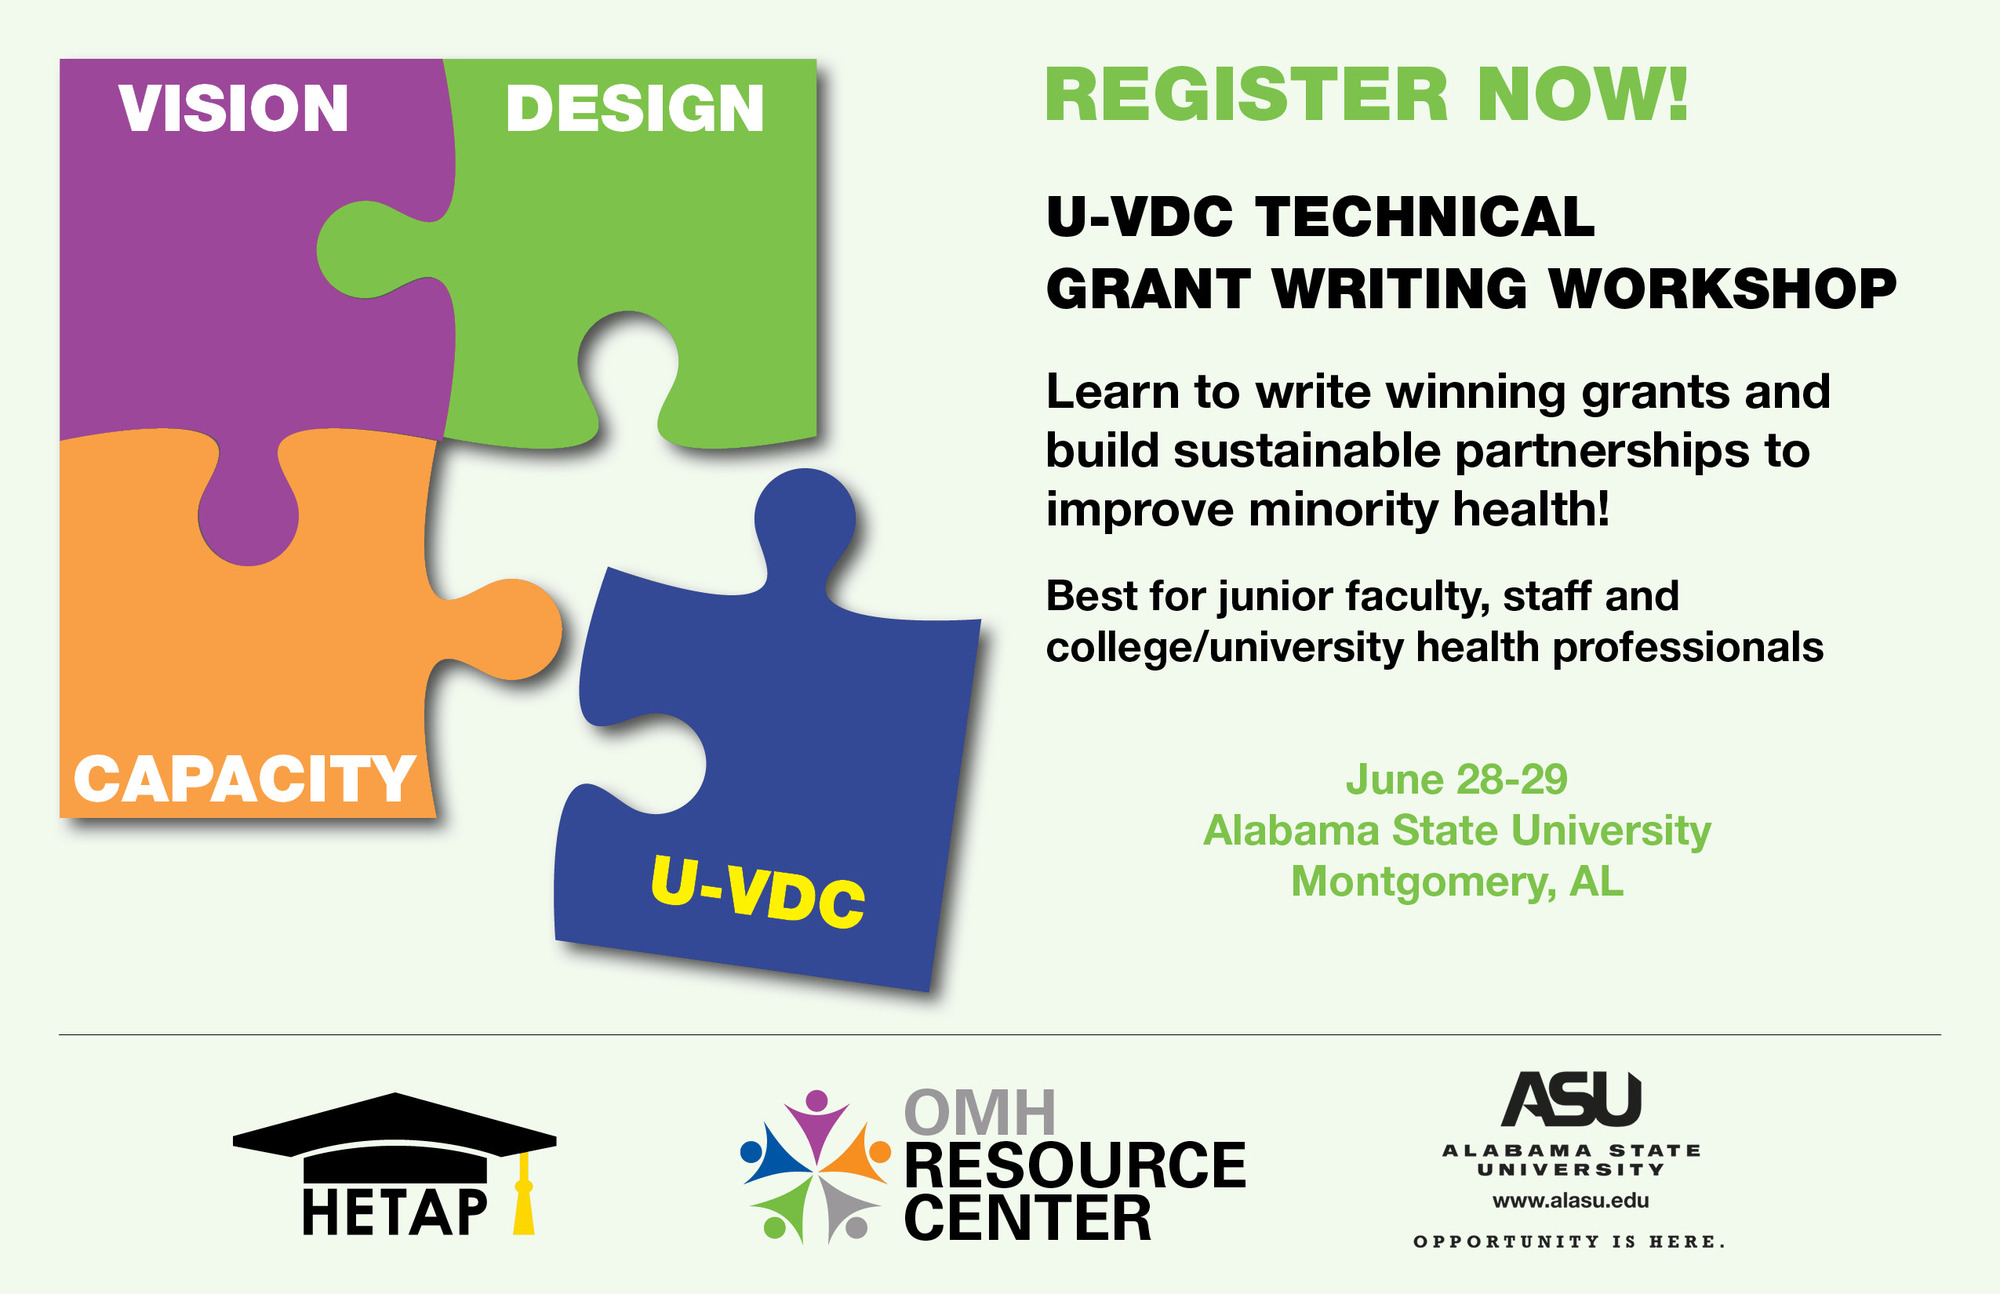 Vision Design Capacity U-VDC Technical Grant Writing Workshop June 28-29 Alabama State University Montgomery AL Click to Register Now